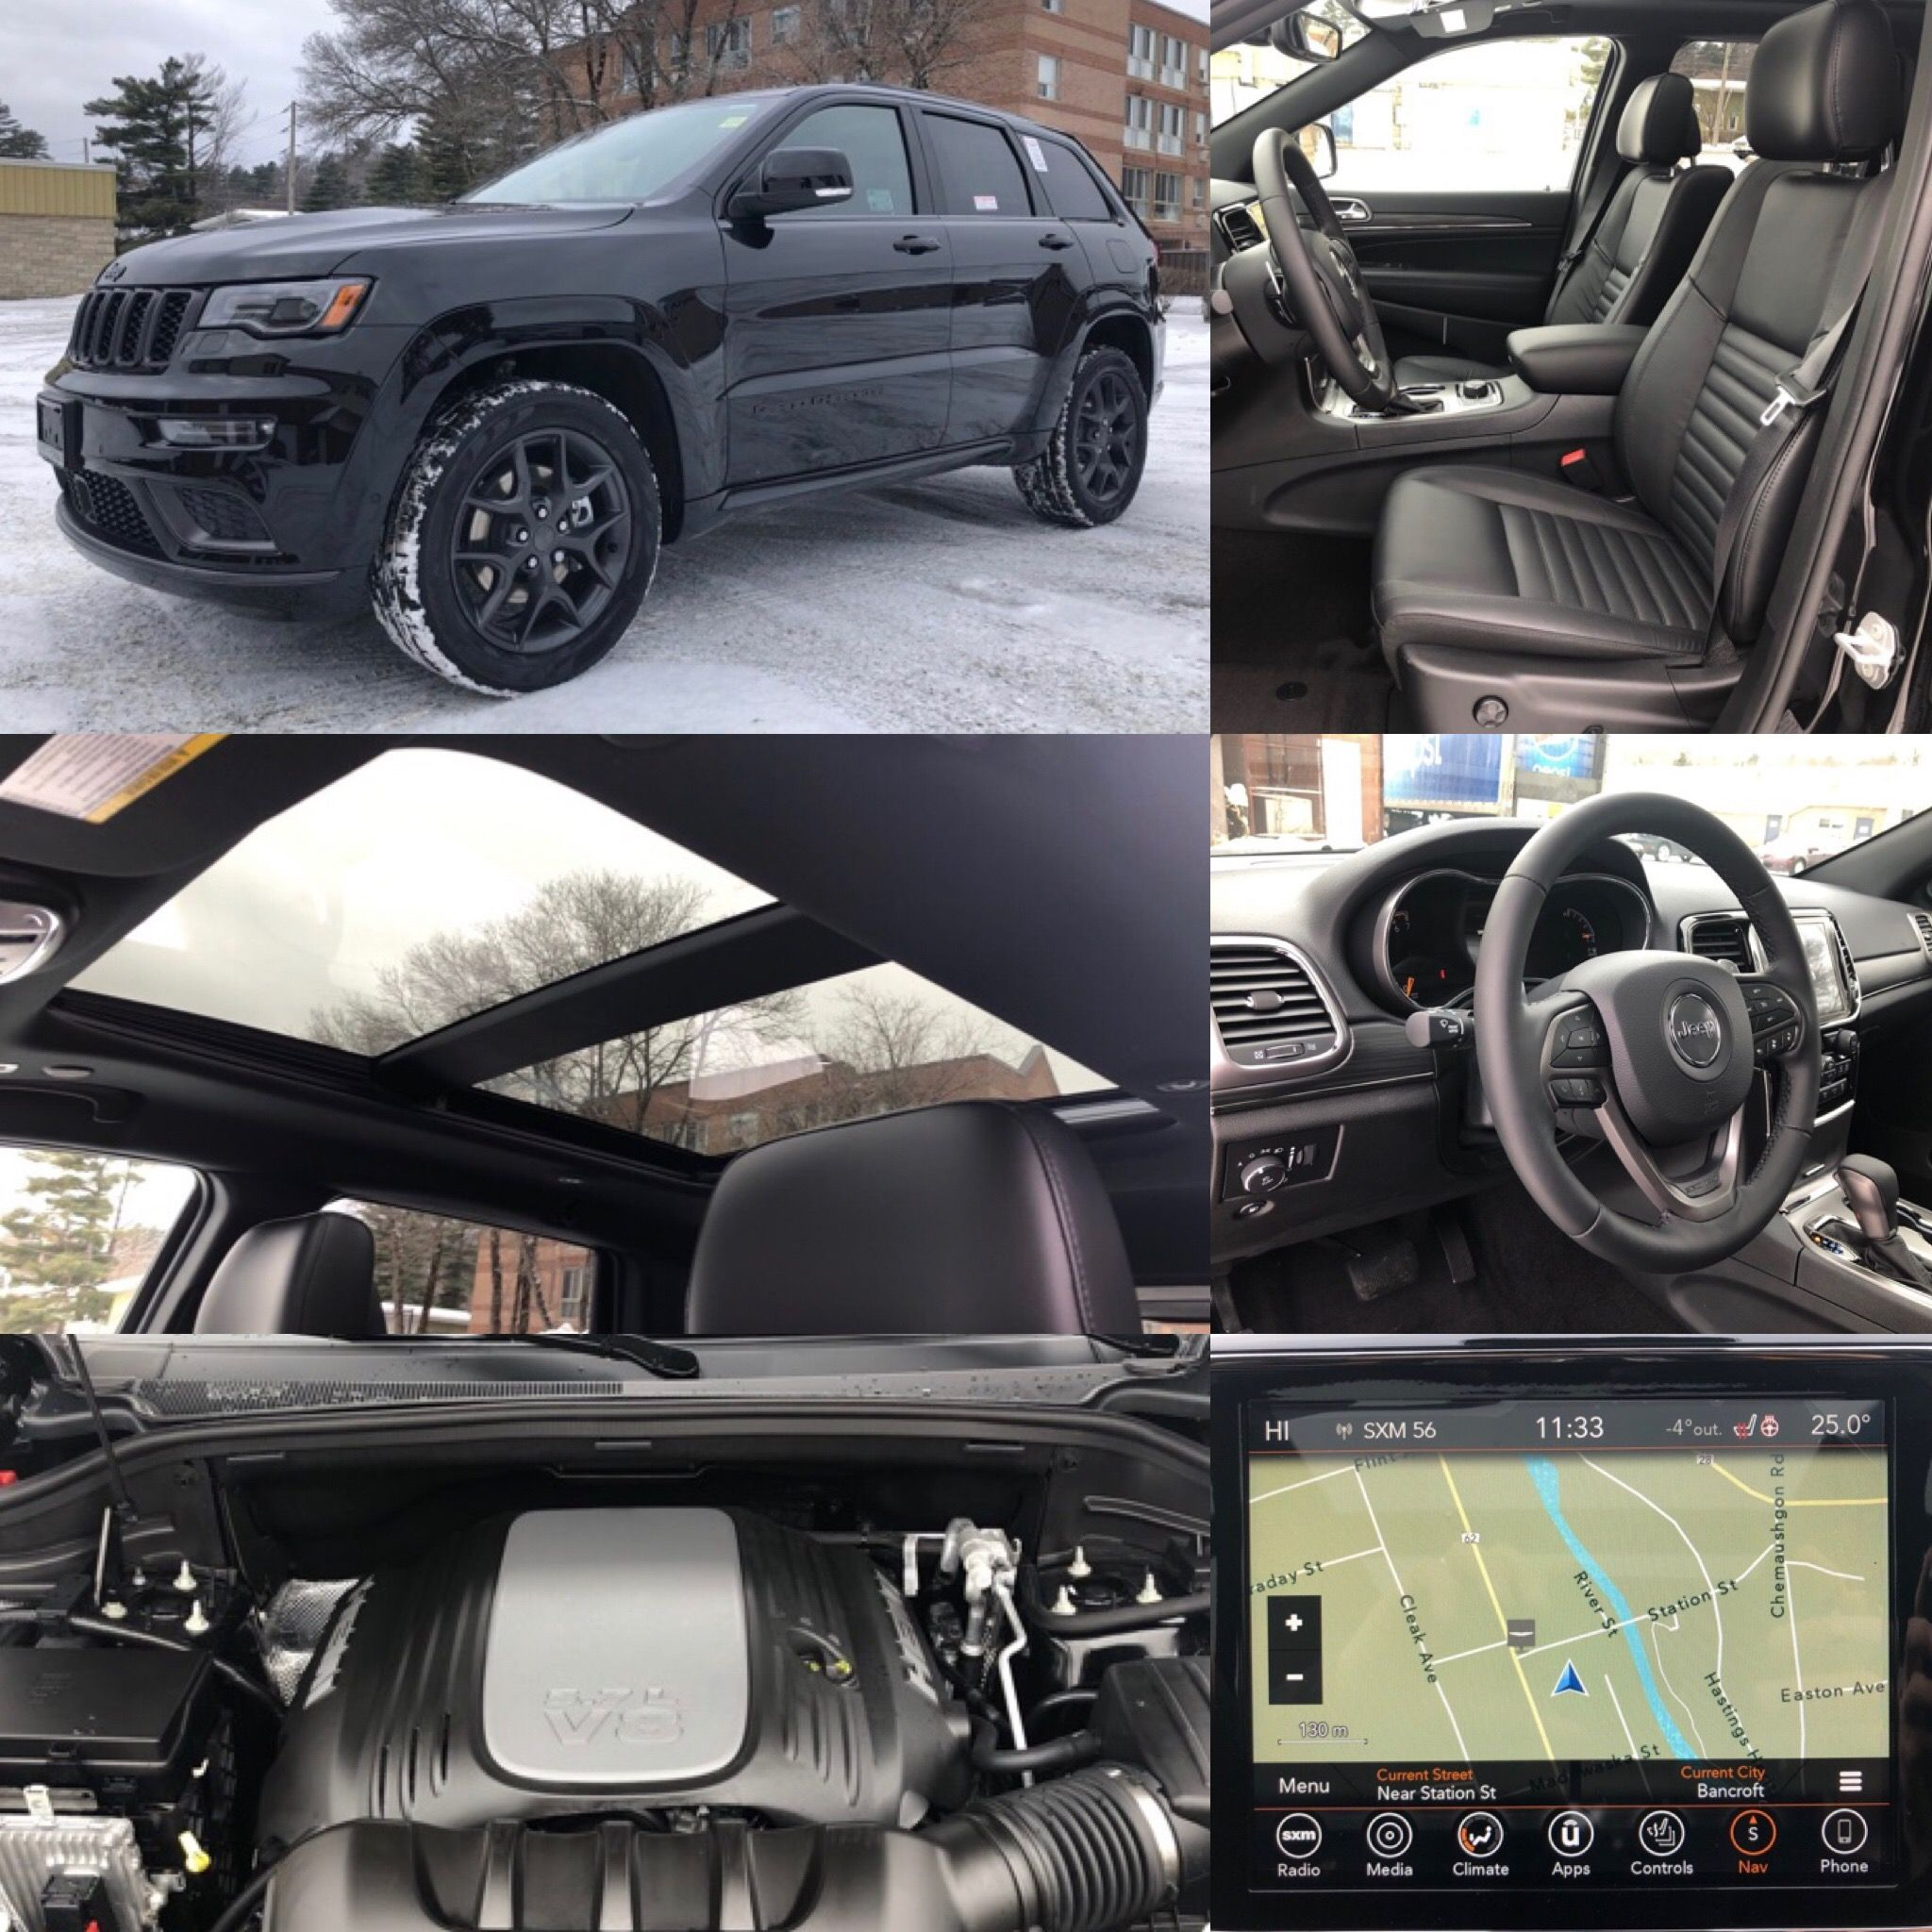 2019 Diamond Black Crystal Jeep Grand Cherokee Limited X 4x4 Hemi Leathe Jeep Grand Cherokee Limited Jeep Grand Cherokee Accessories Grand Cherokee Limited